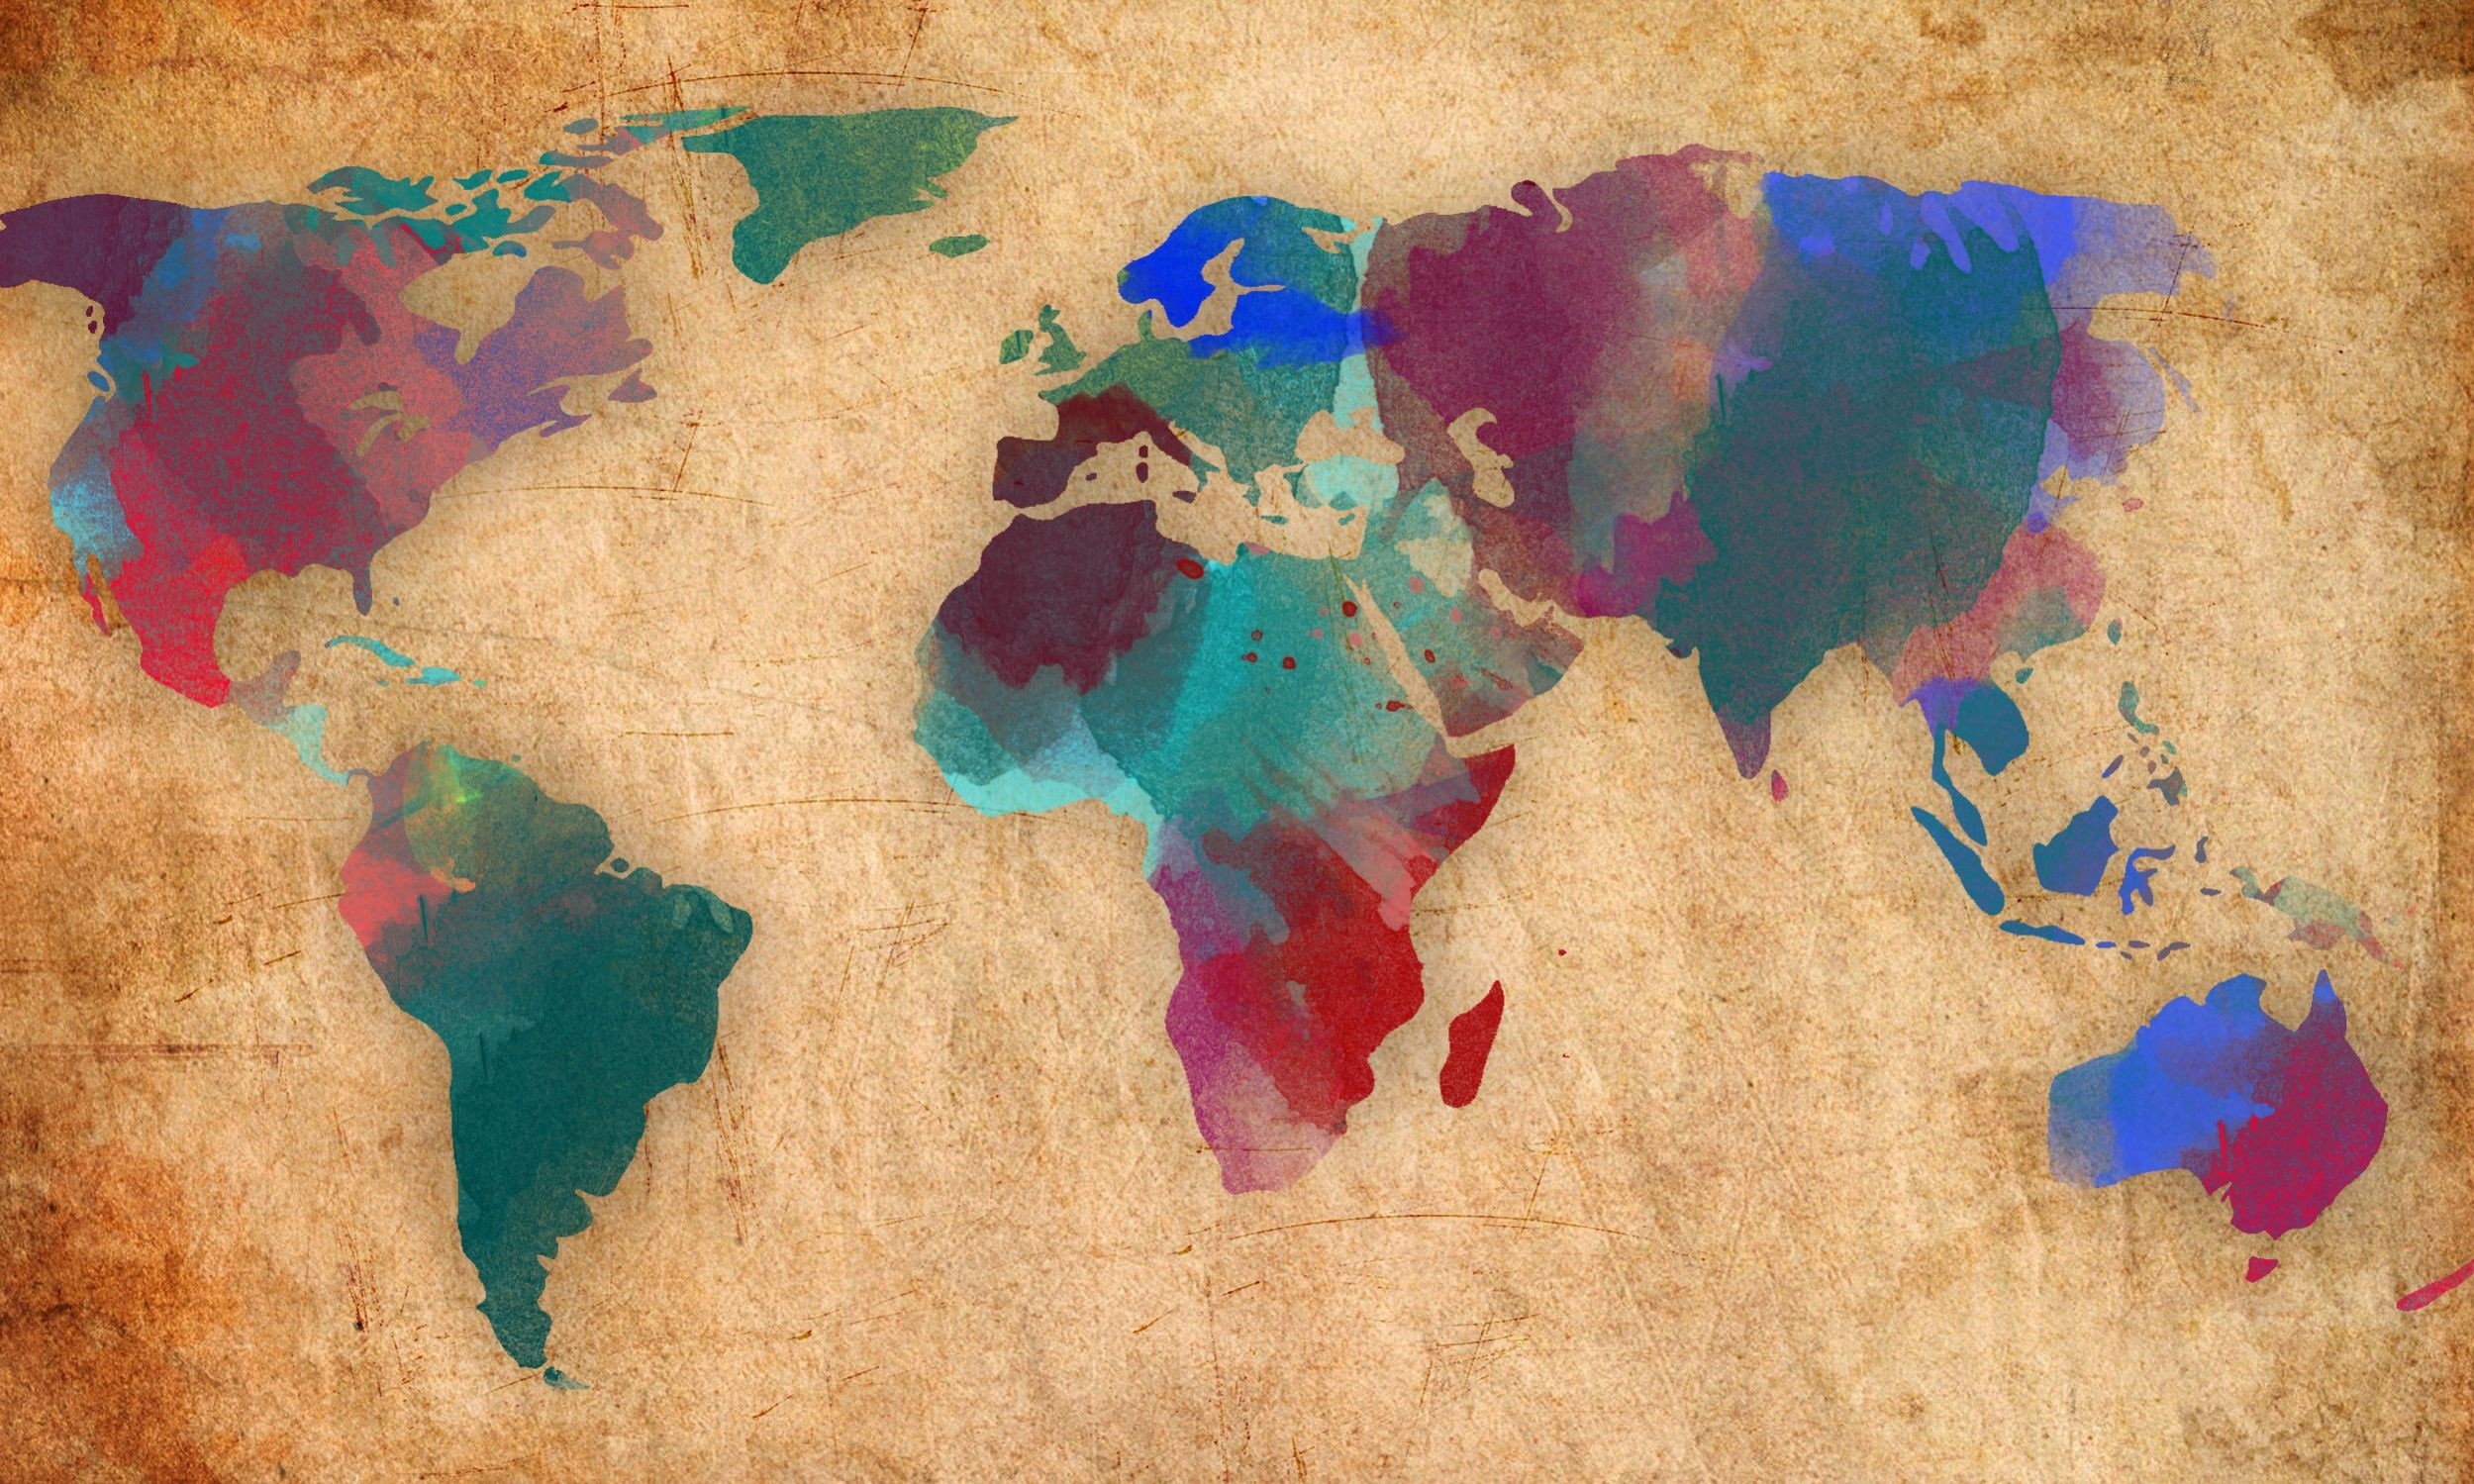 2499x1499 Wallpaper Of World Map Images)